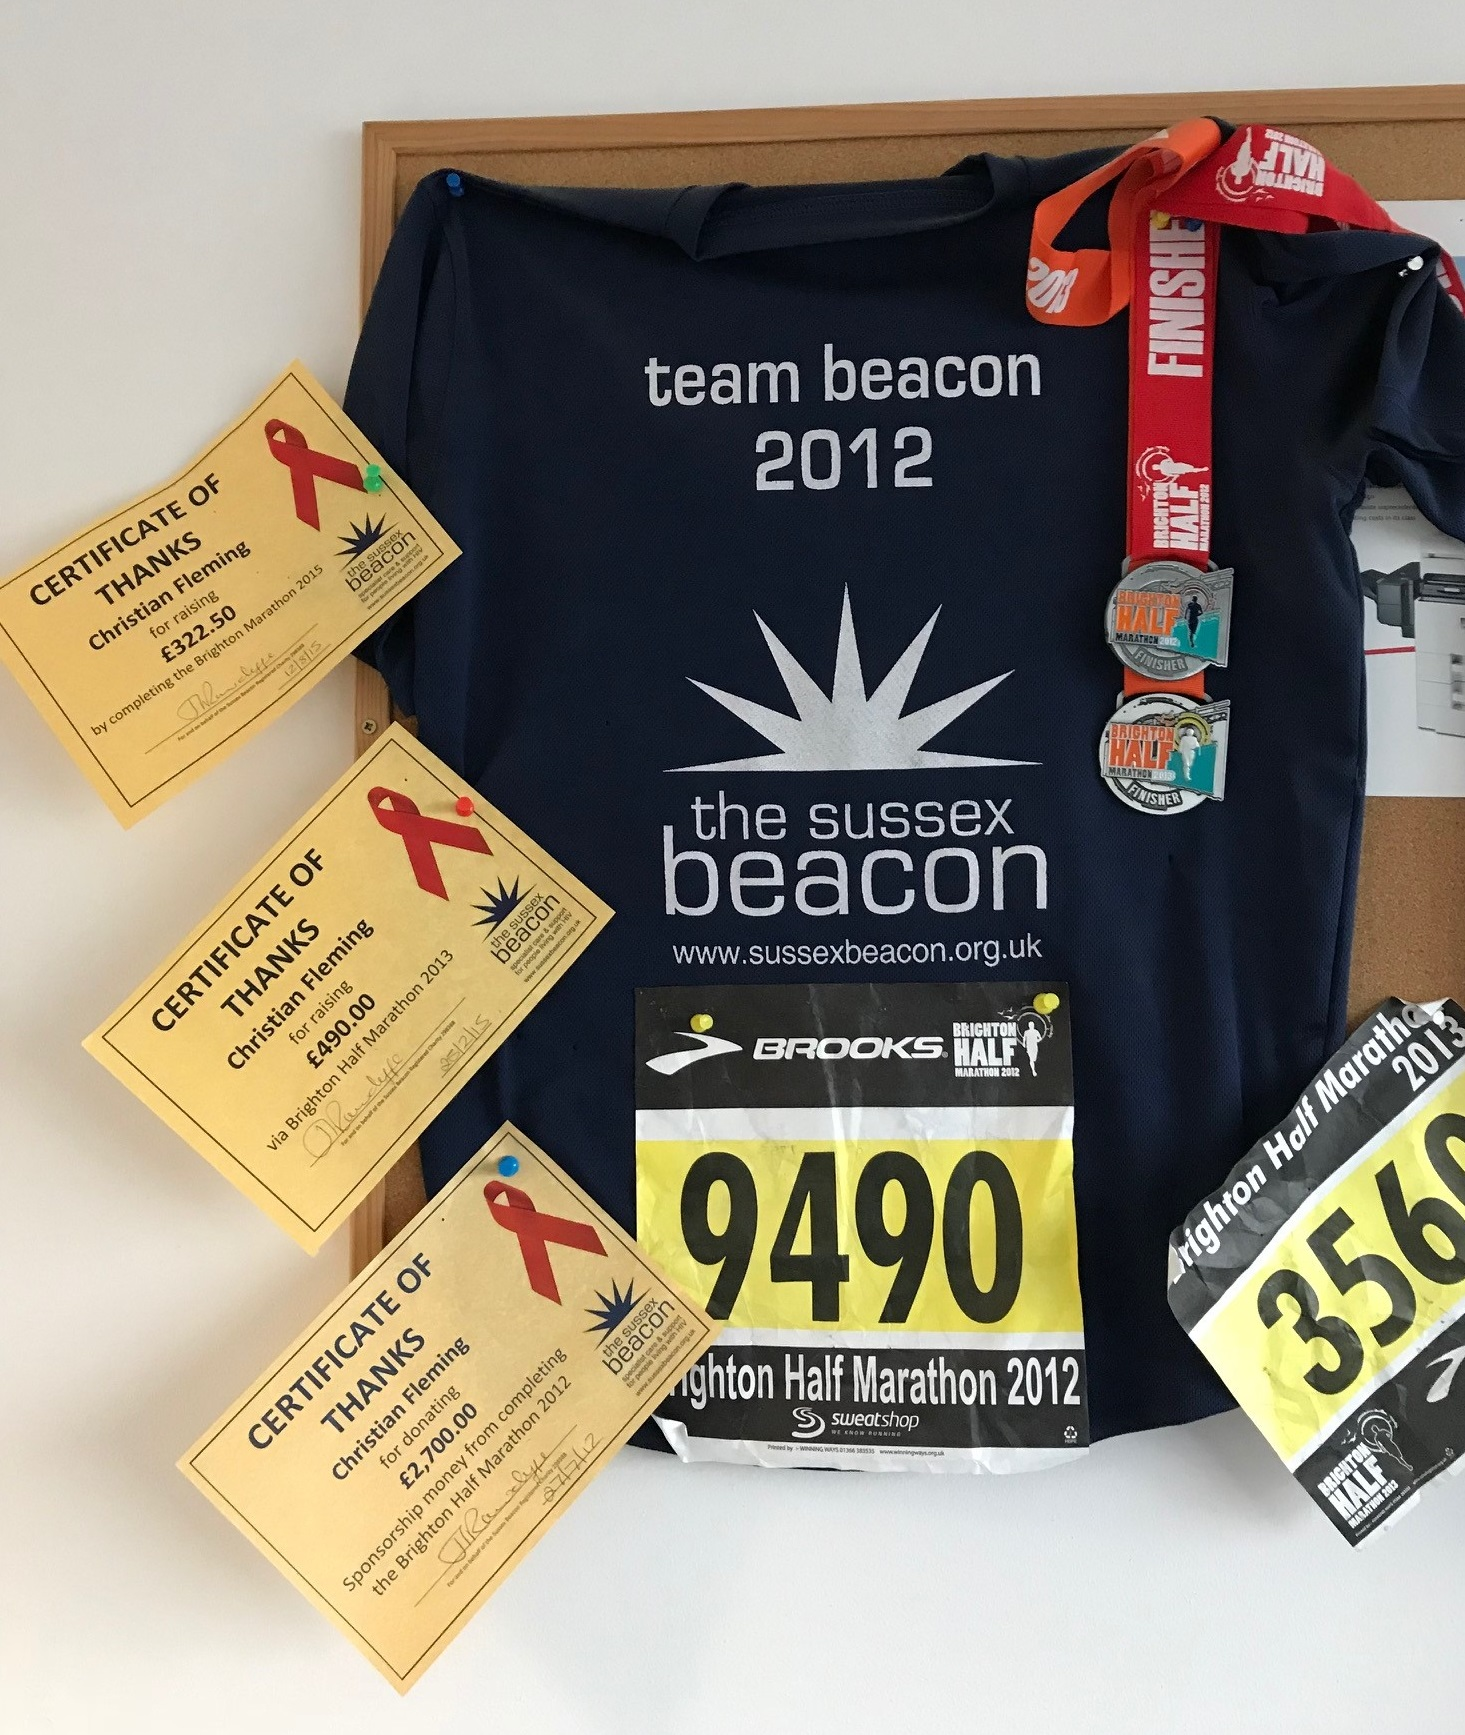 2012 Brighton Half Marathon Shirt and Certificates